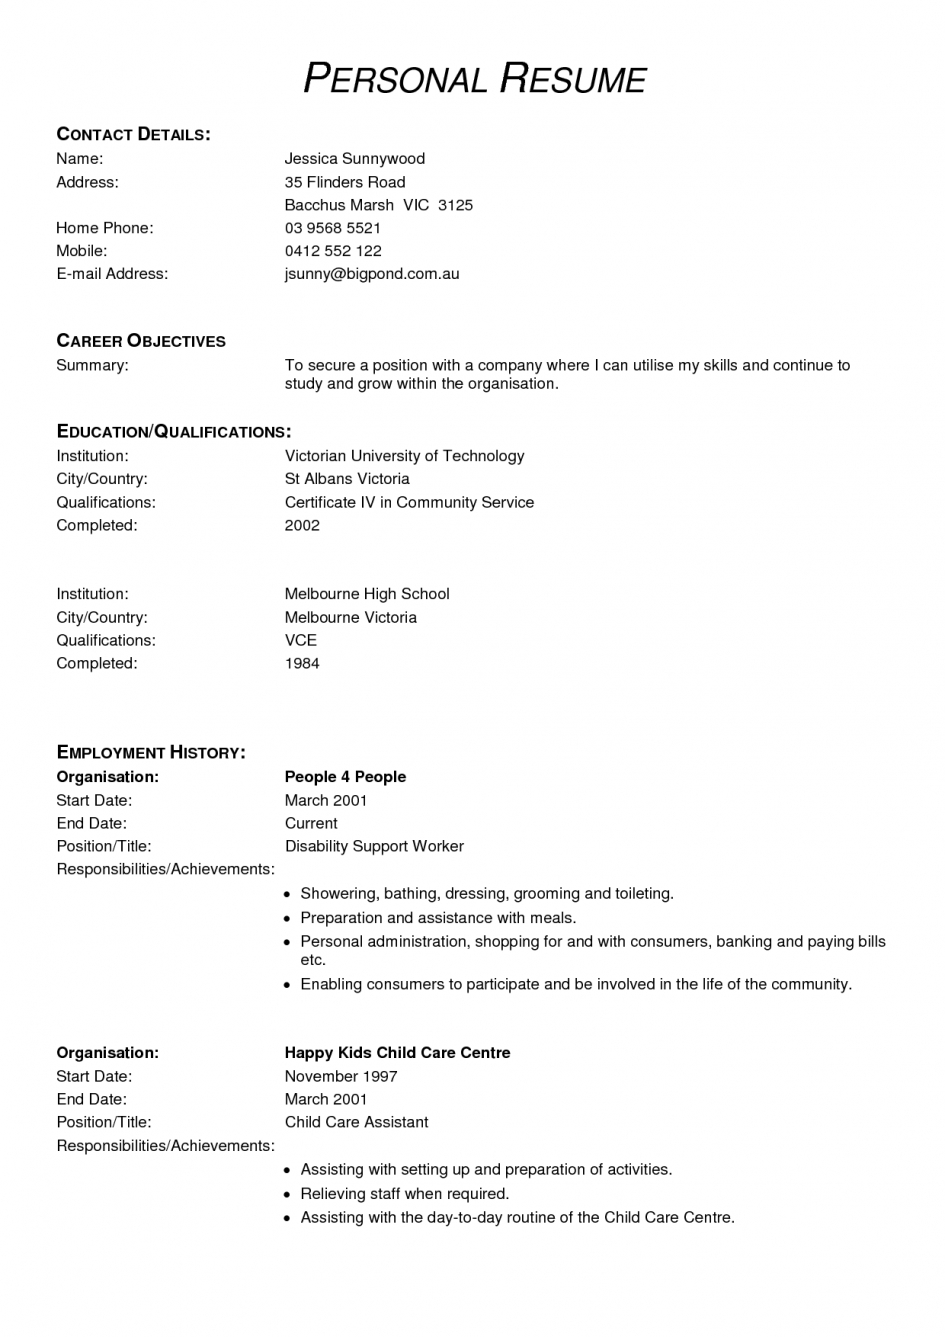 Medical Receptionist Resume Template - Download Elegant Sample Medical Receptionist Resume